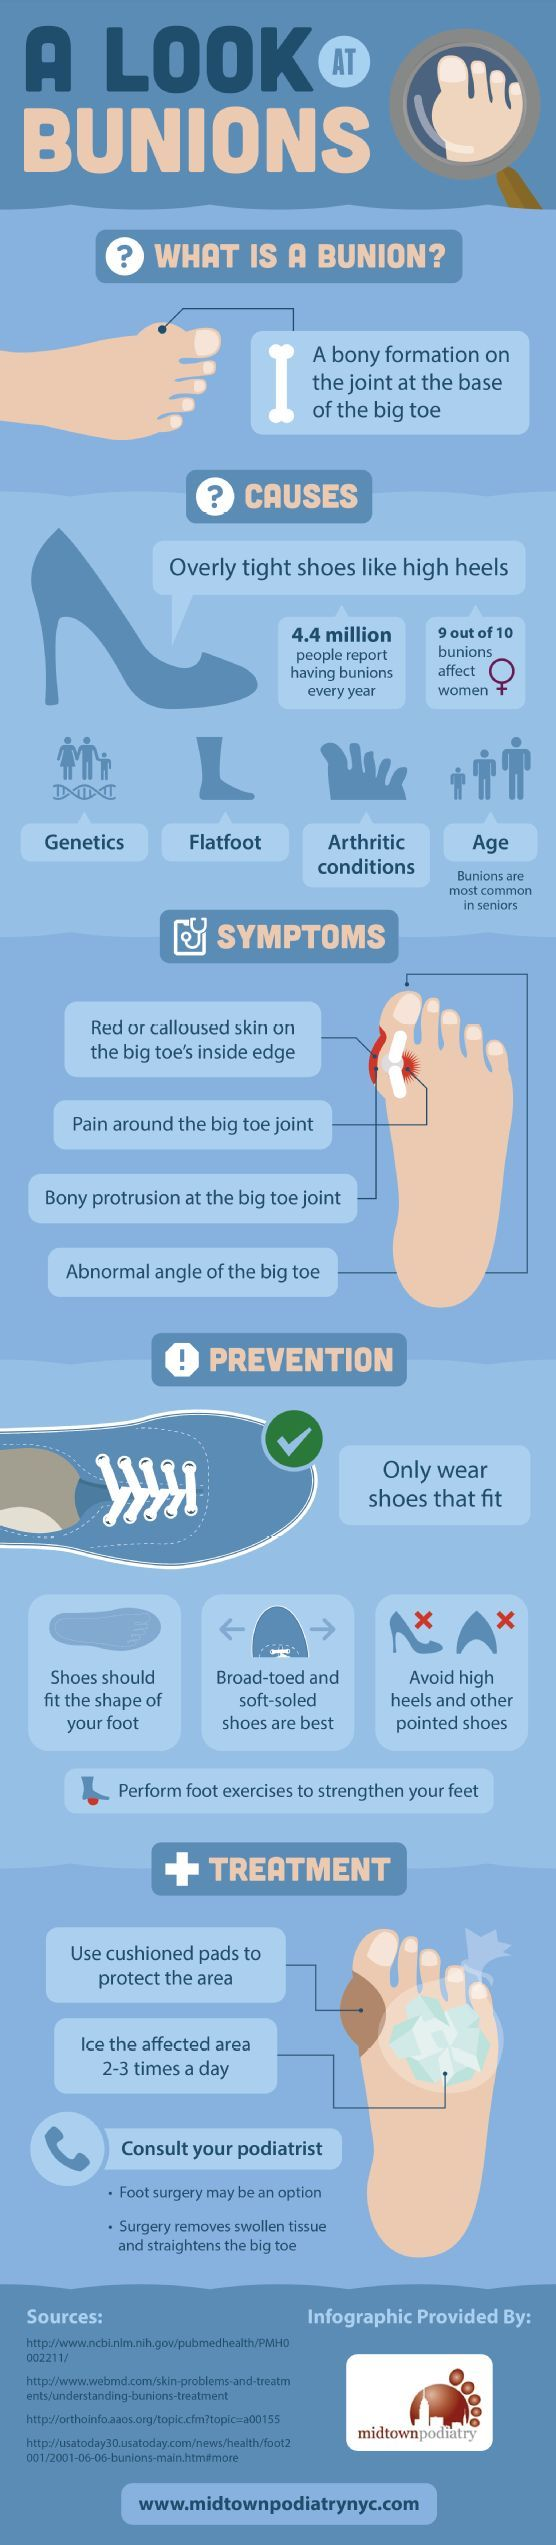 A Look At Bunions